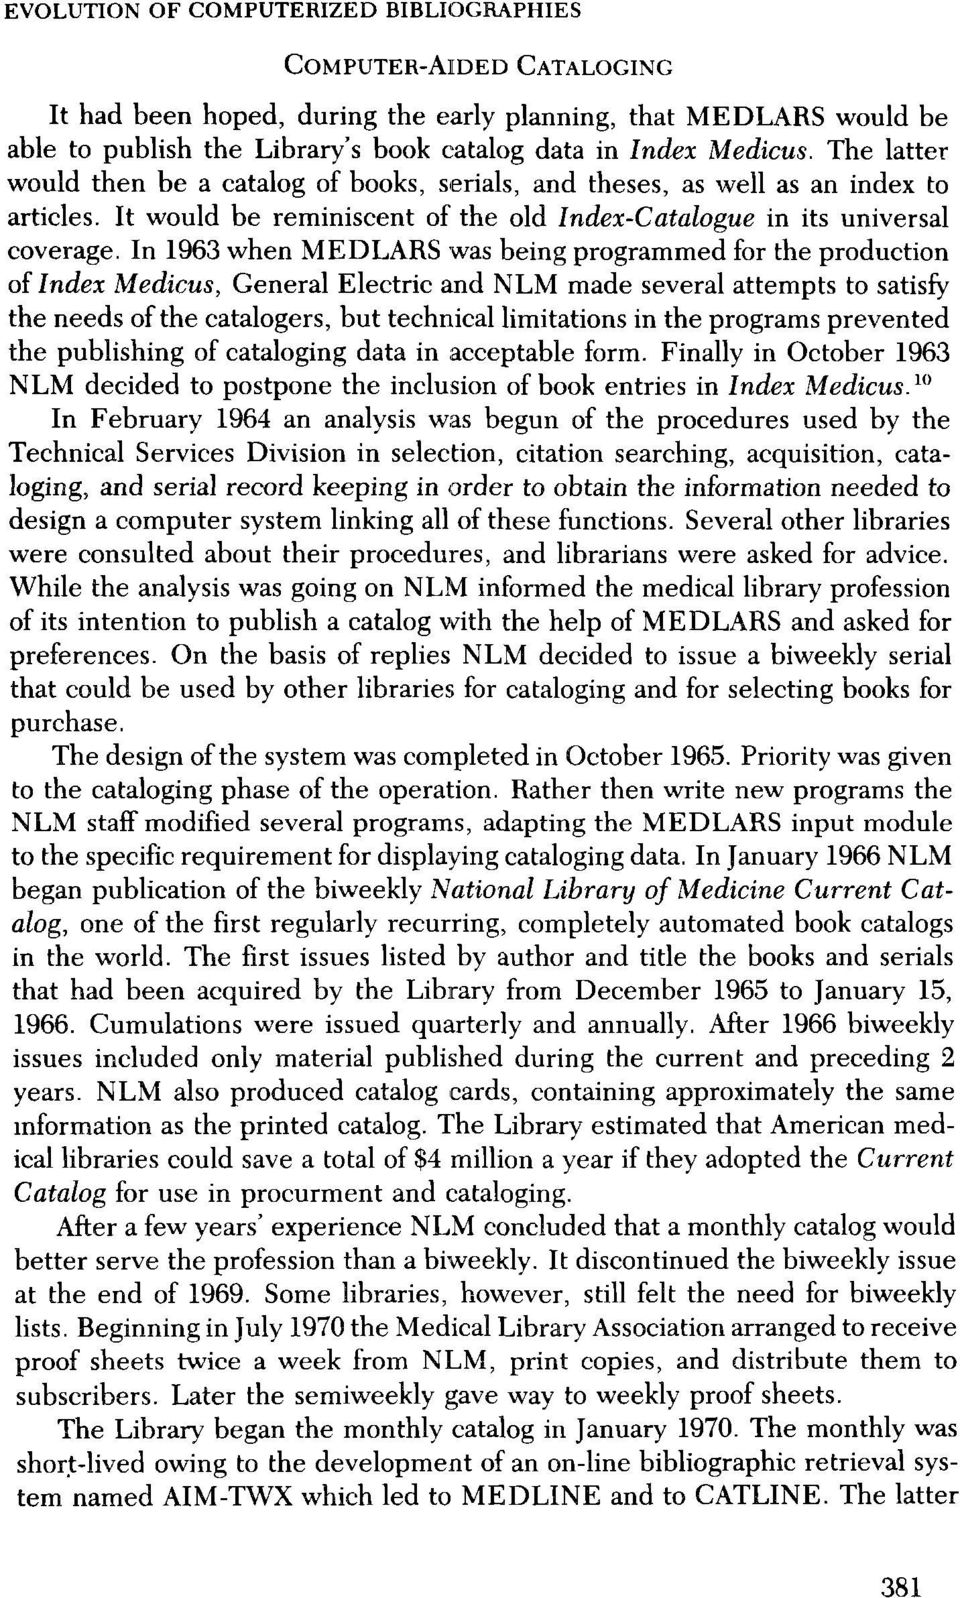 In 1963 when MEDLARS was being programmed for the production of Index Medicus, General Electric and NLM made several attempts to satisfy the needs of the catalogers, but technical limitations in the